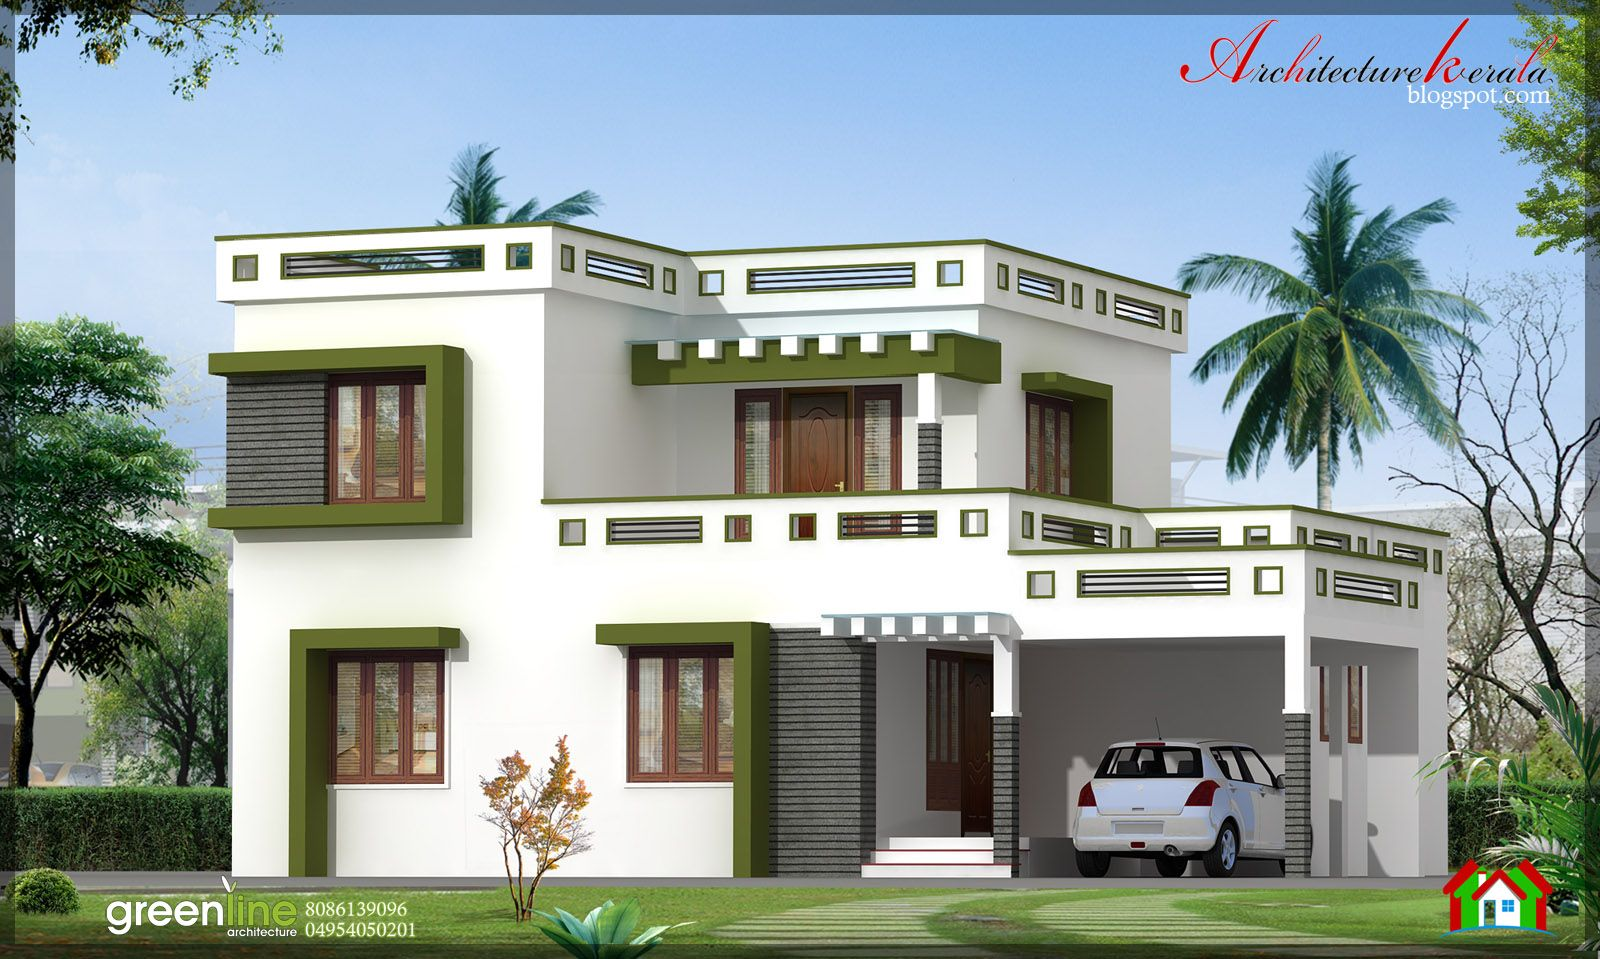 simple home designs. house plans ~ ngineeye - ^ 1000+ images about front elevation on pinterest simple home designs